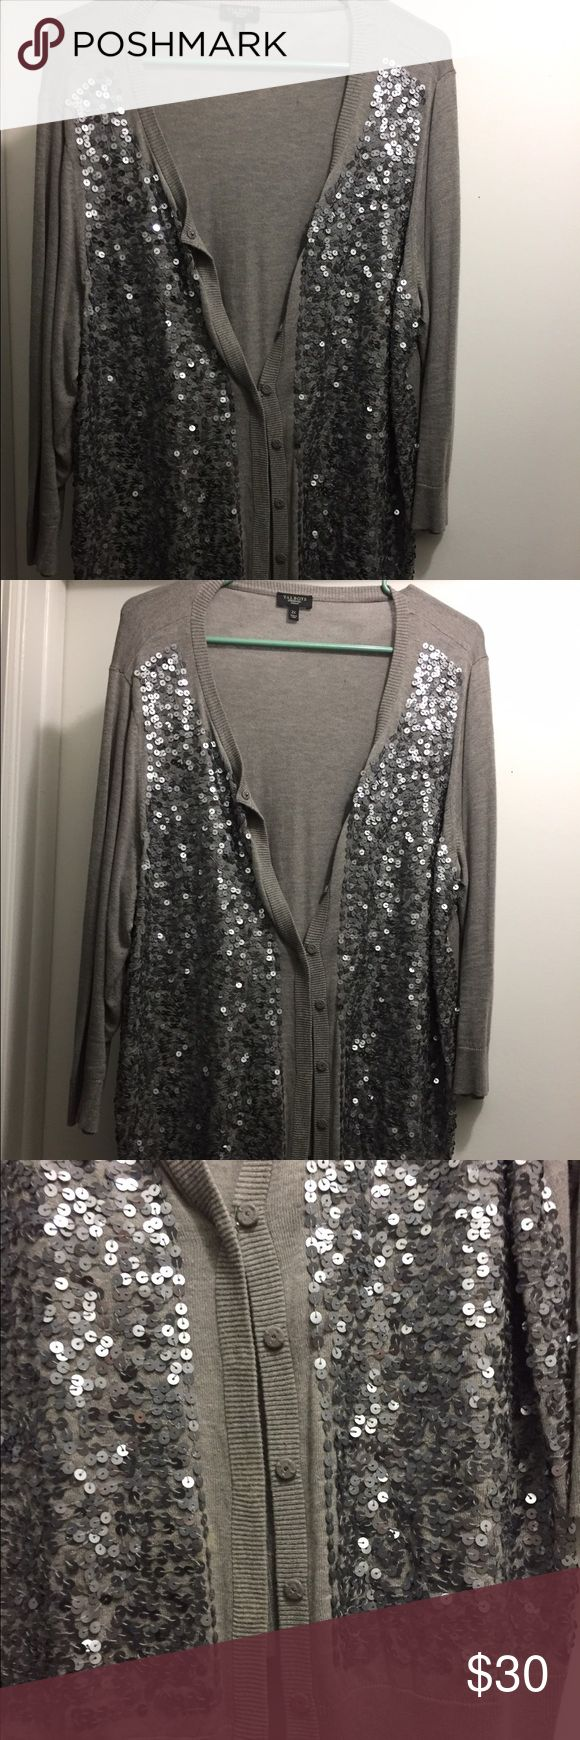 Talbots grey and silver sequin cardigan Sparkly grey and silver sequin cardigan Talbots Sweaters Cardigans